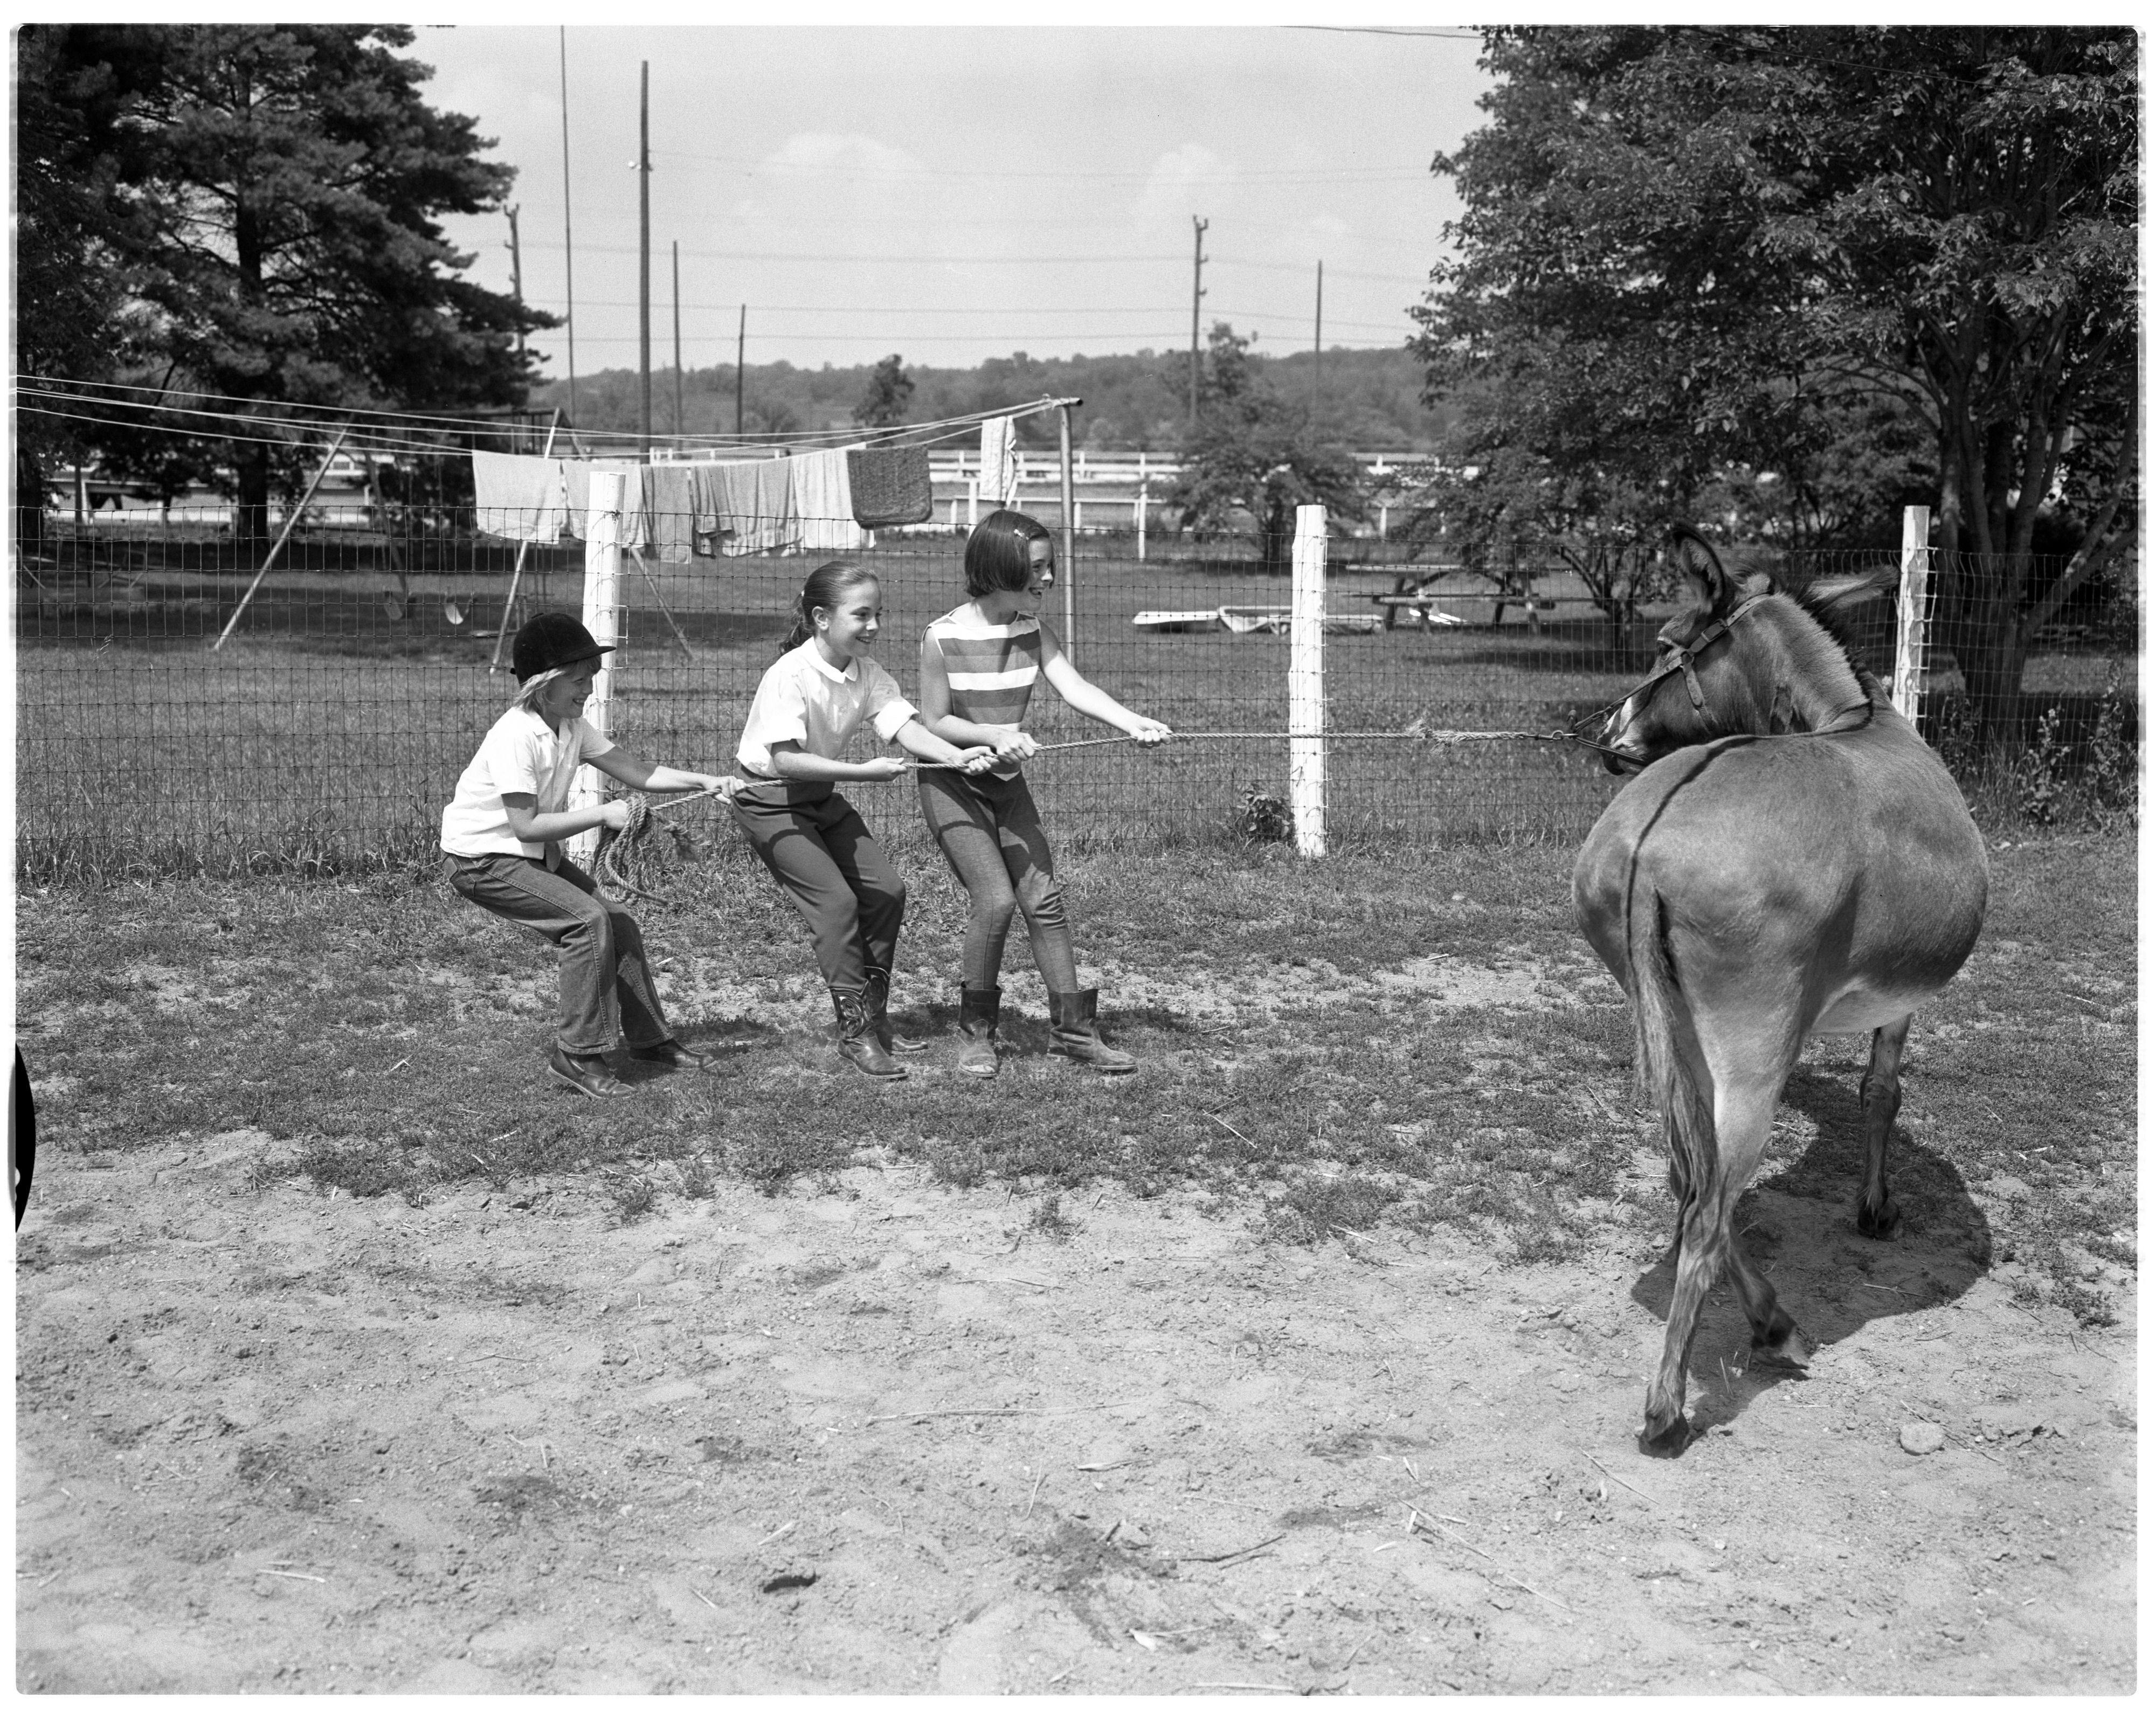 Children with Marilyn the Burro - Huron River Stables, July 1964 image